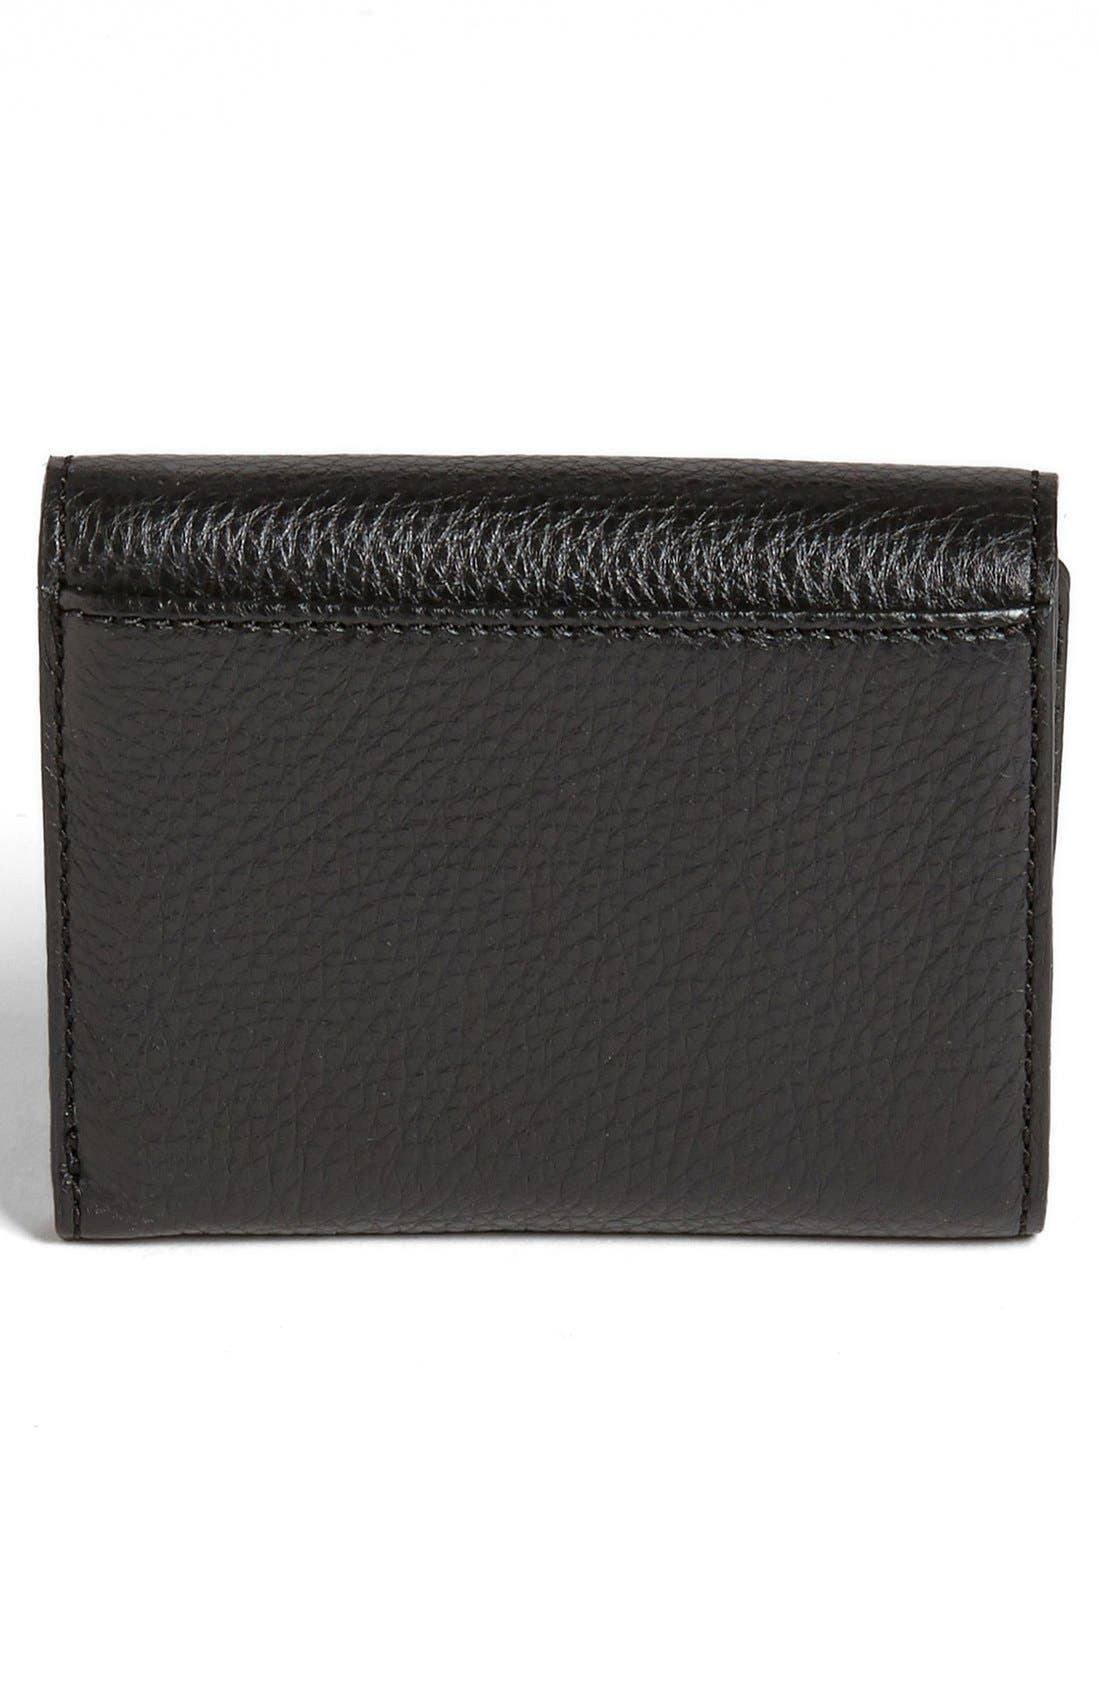 Alternate Image 3  - MARC BY MARC JACOBS 'Classic Q - New' Billfold Wallet